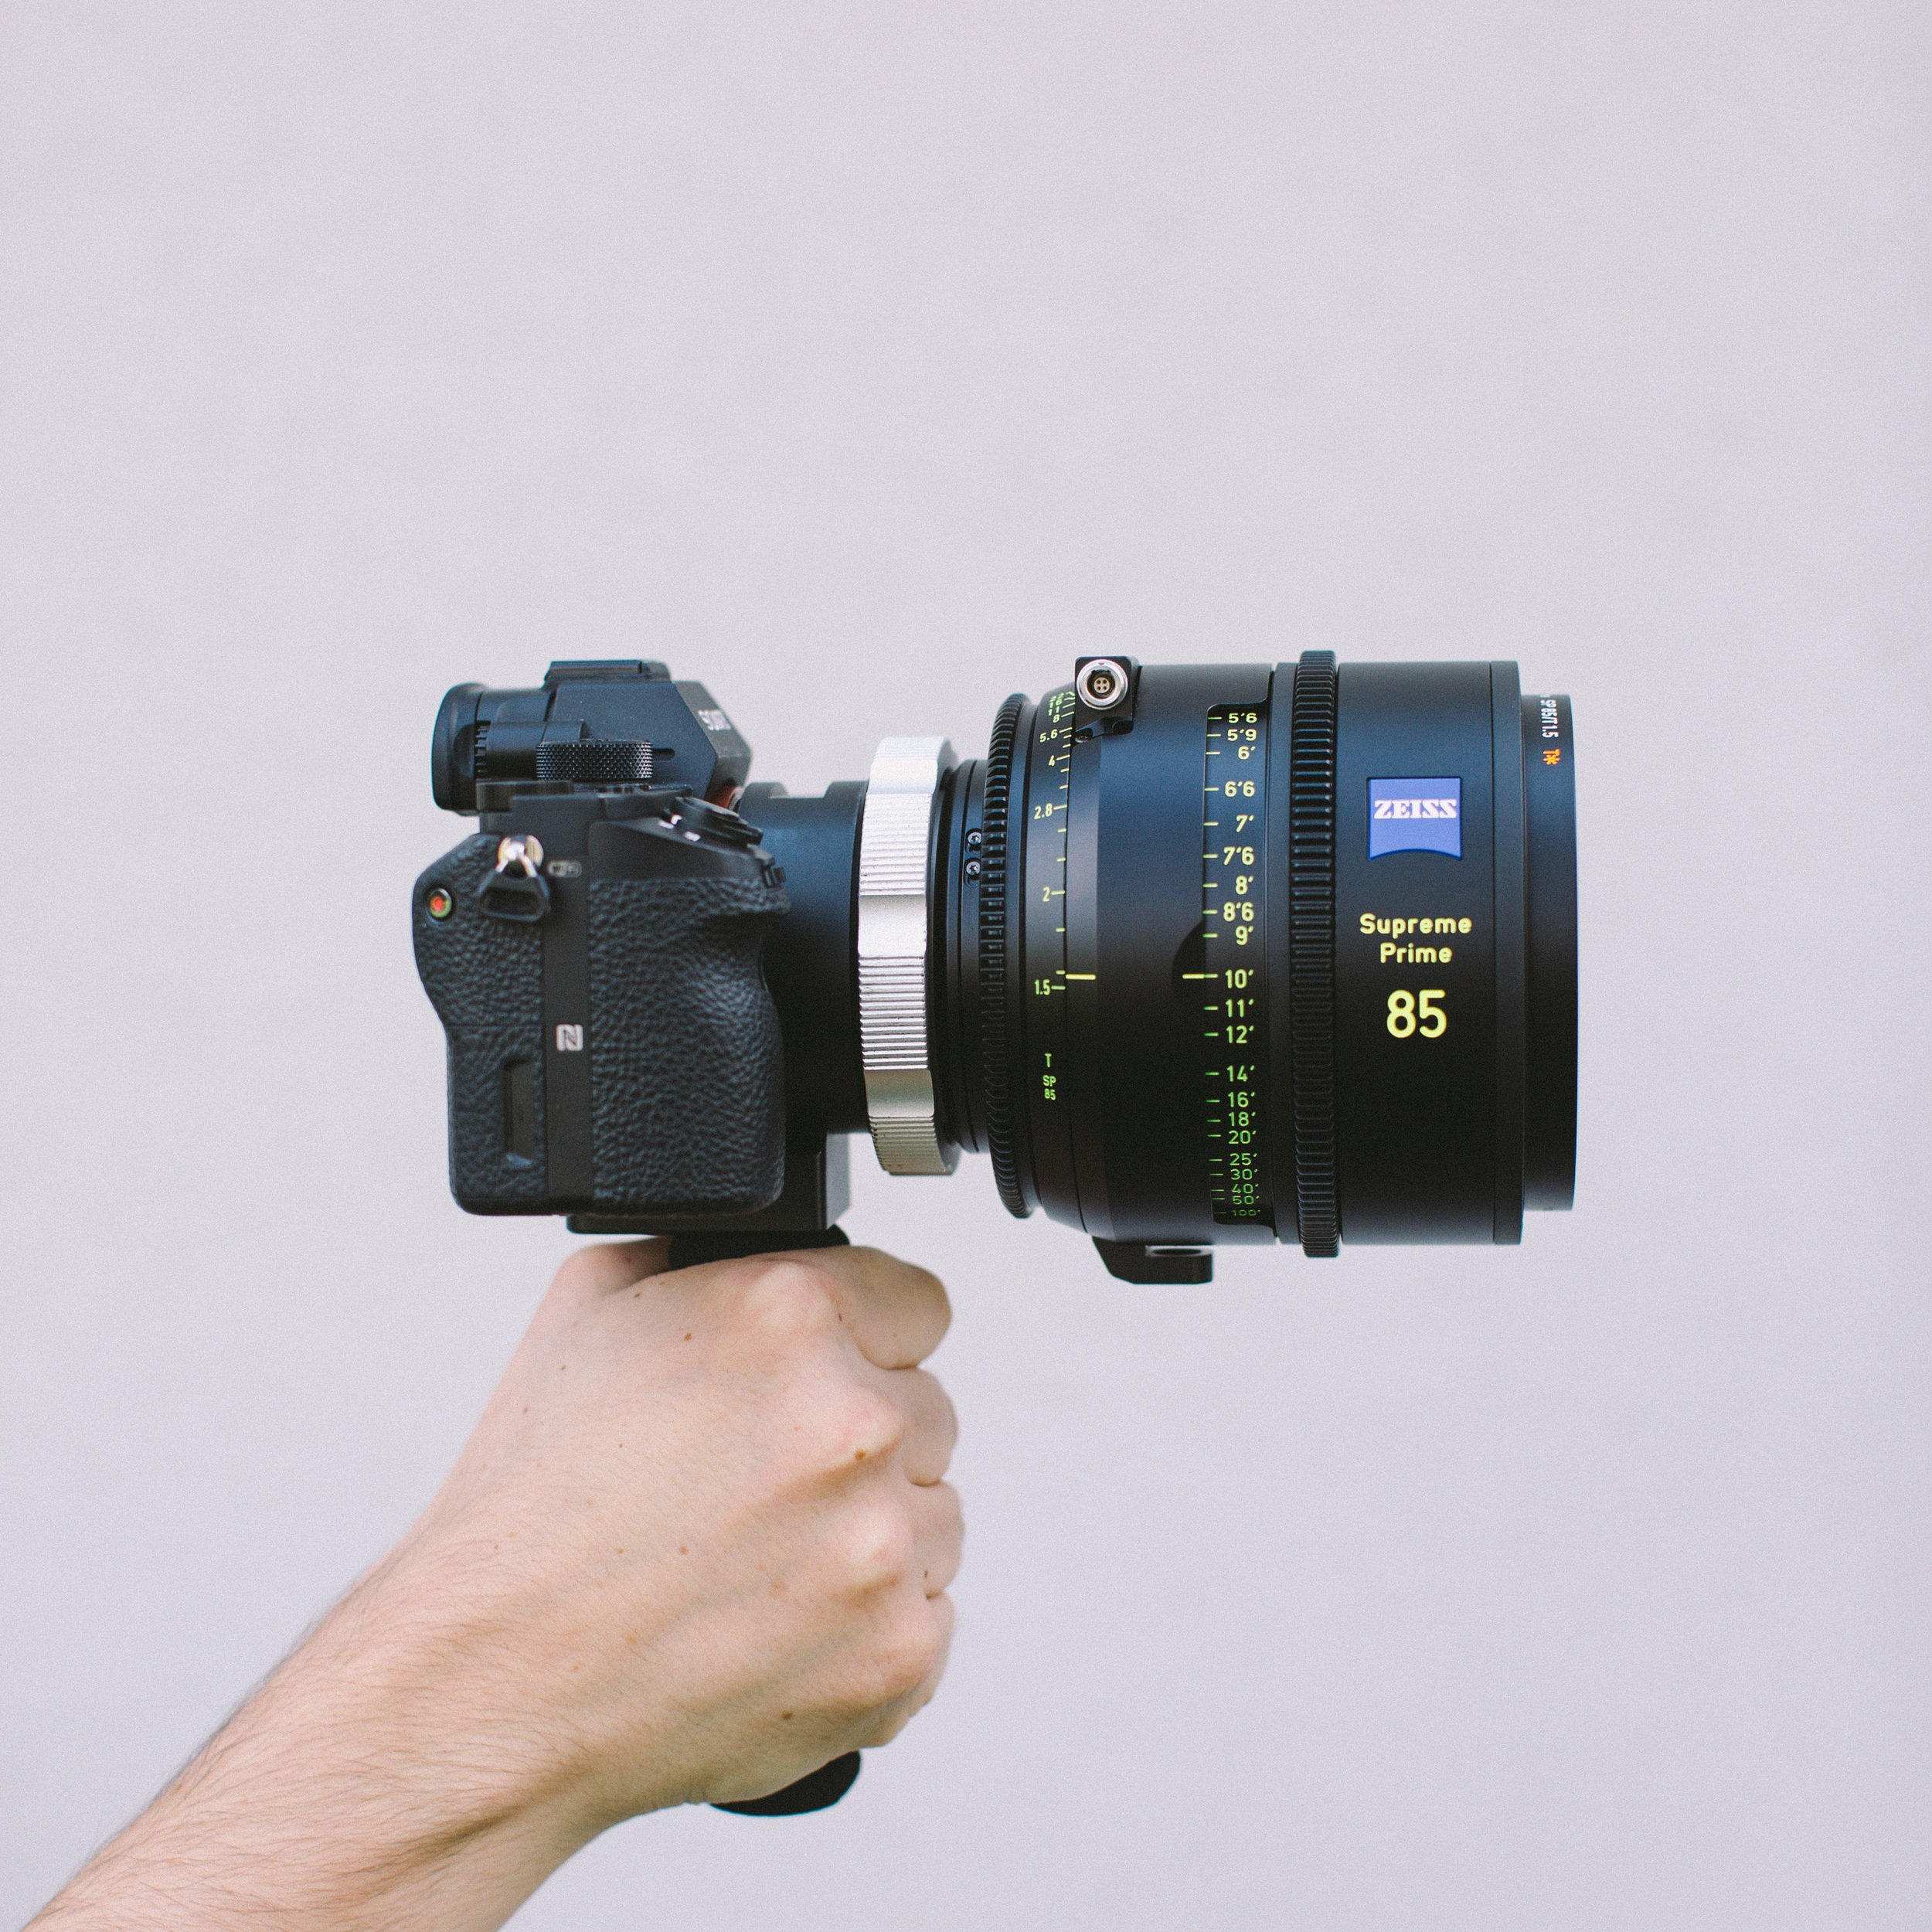 85mm Supreme Prime on the full frame Sony a7s